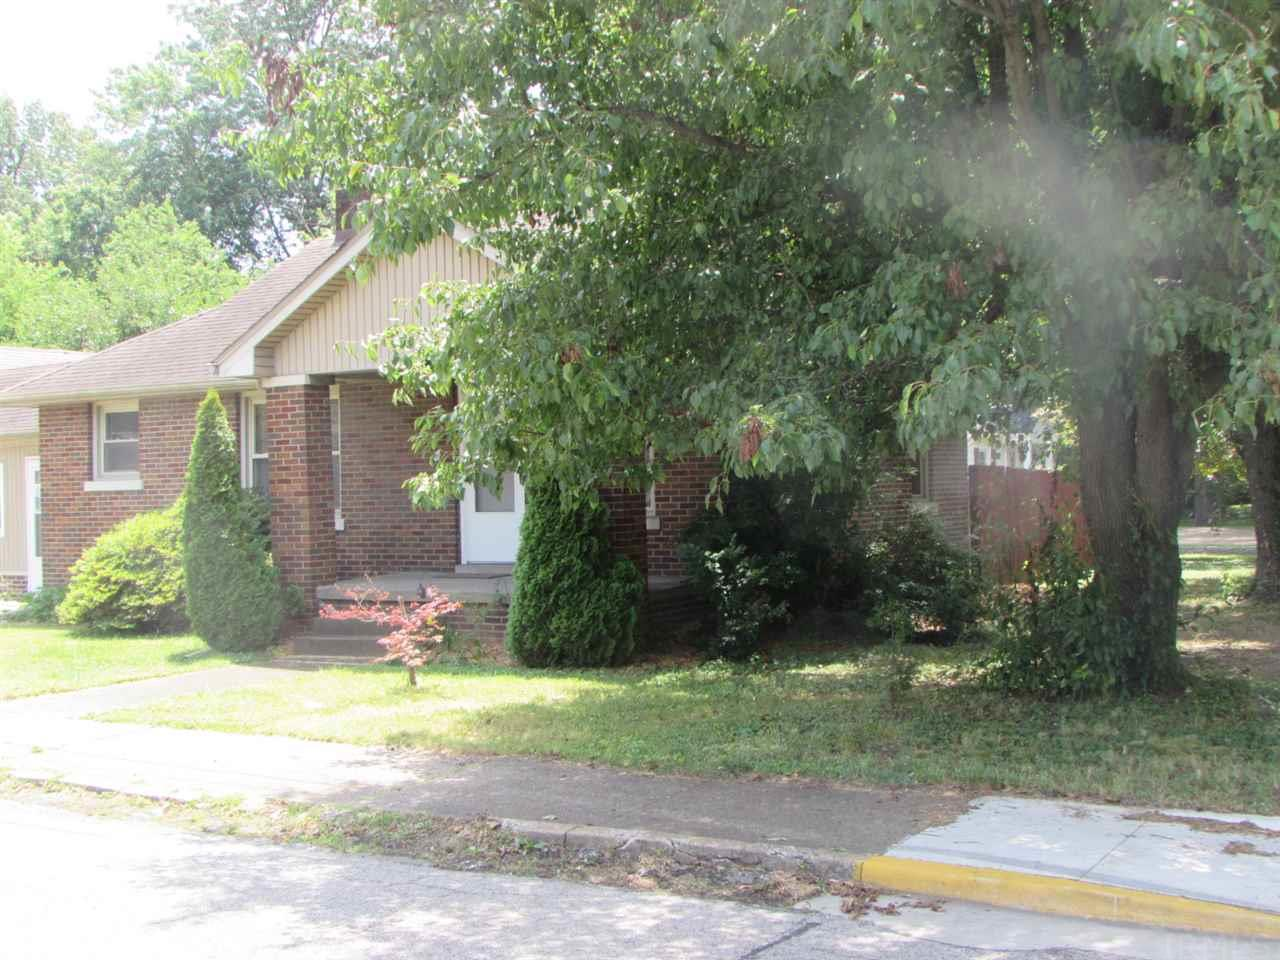 2405 E Walnut, Evansville, IN 47714